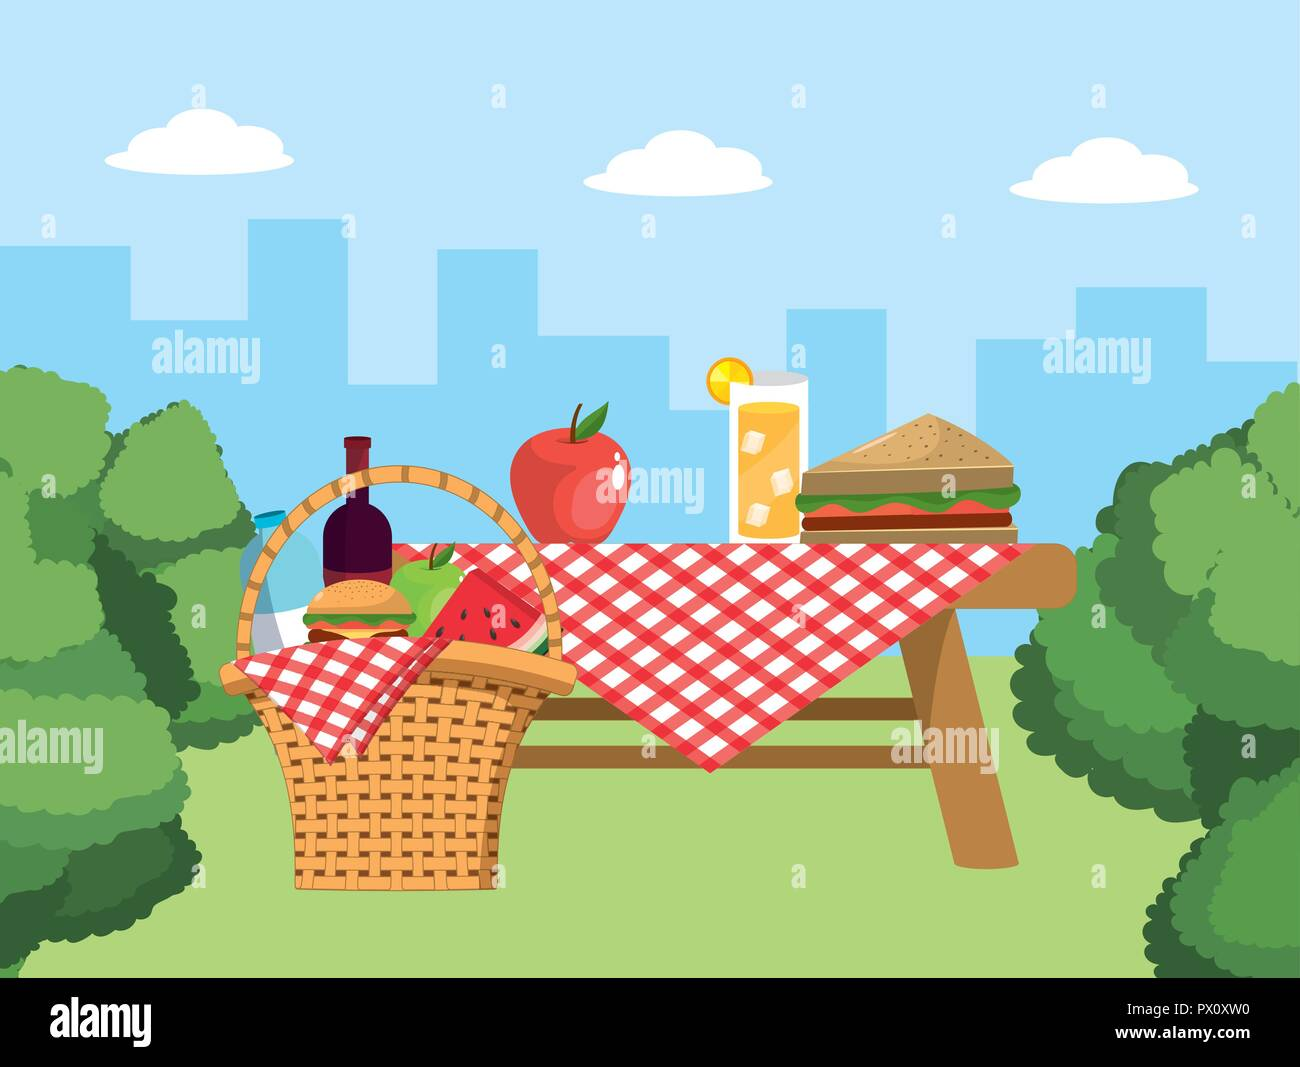 Table And Basket With Food And Tablecloth Decoration Stock Vector Image Art Alamy